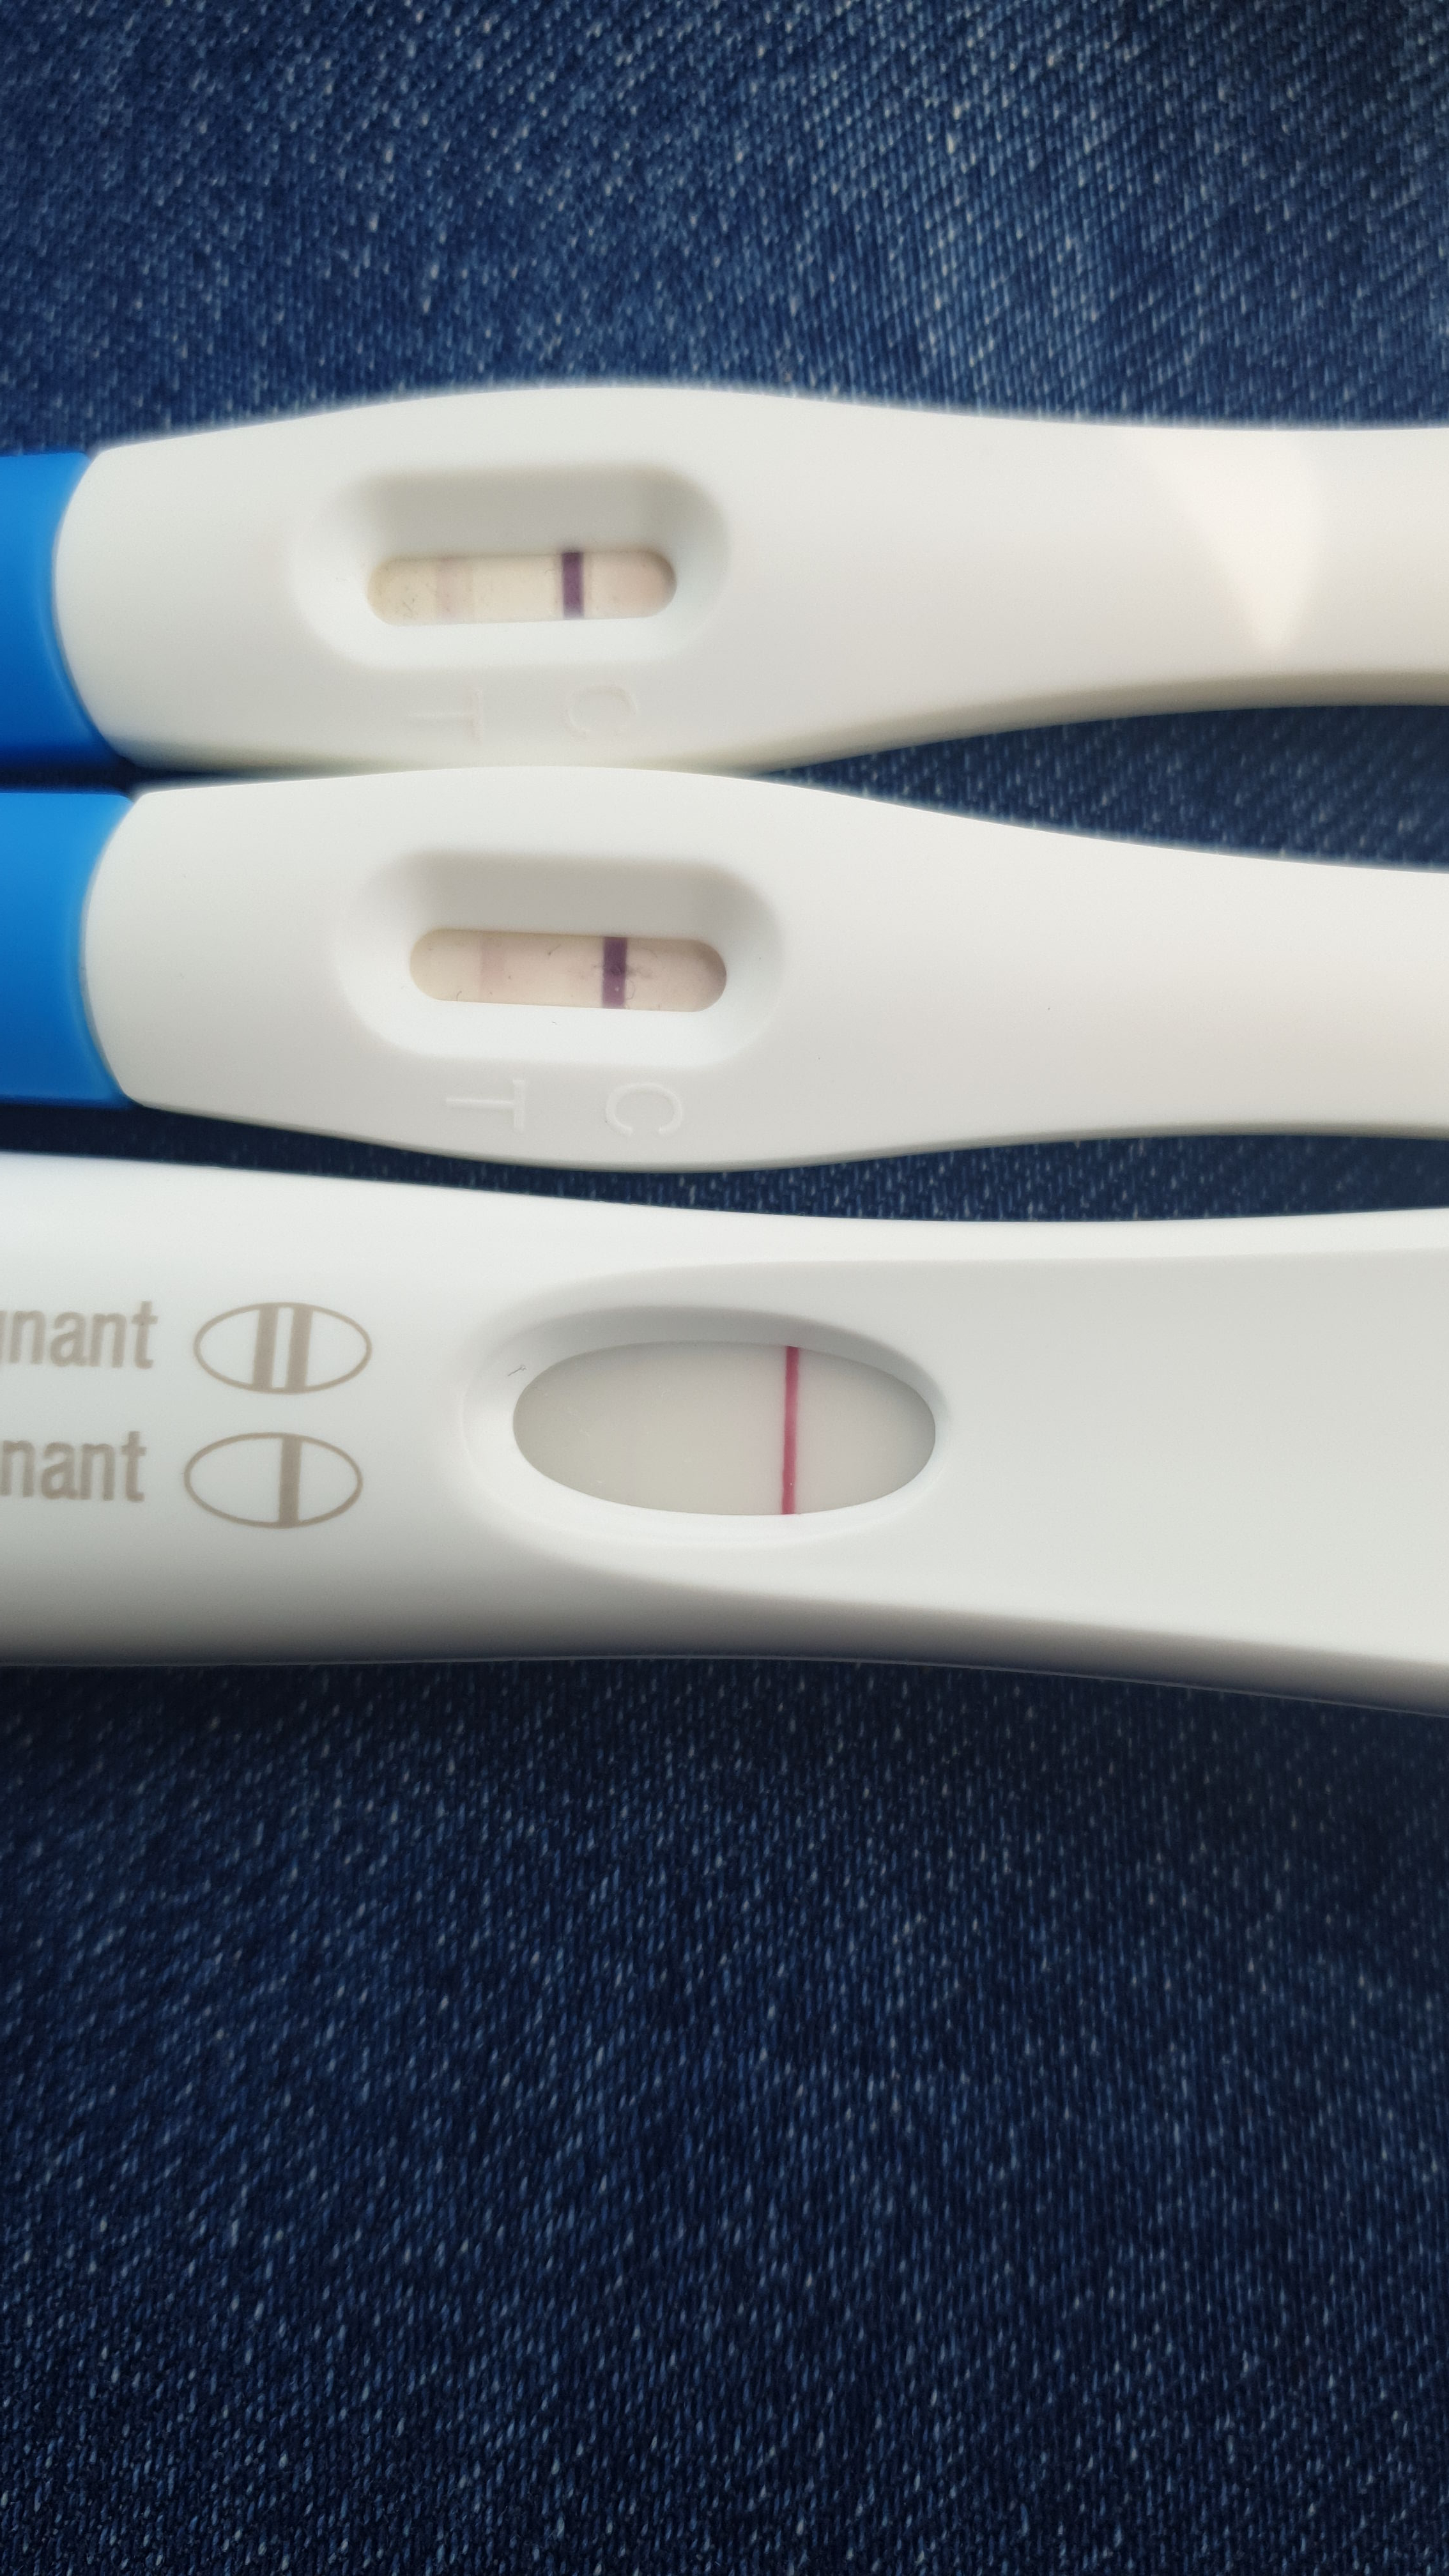 Very very faint line pregnancy test - Page 19 ...